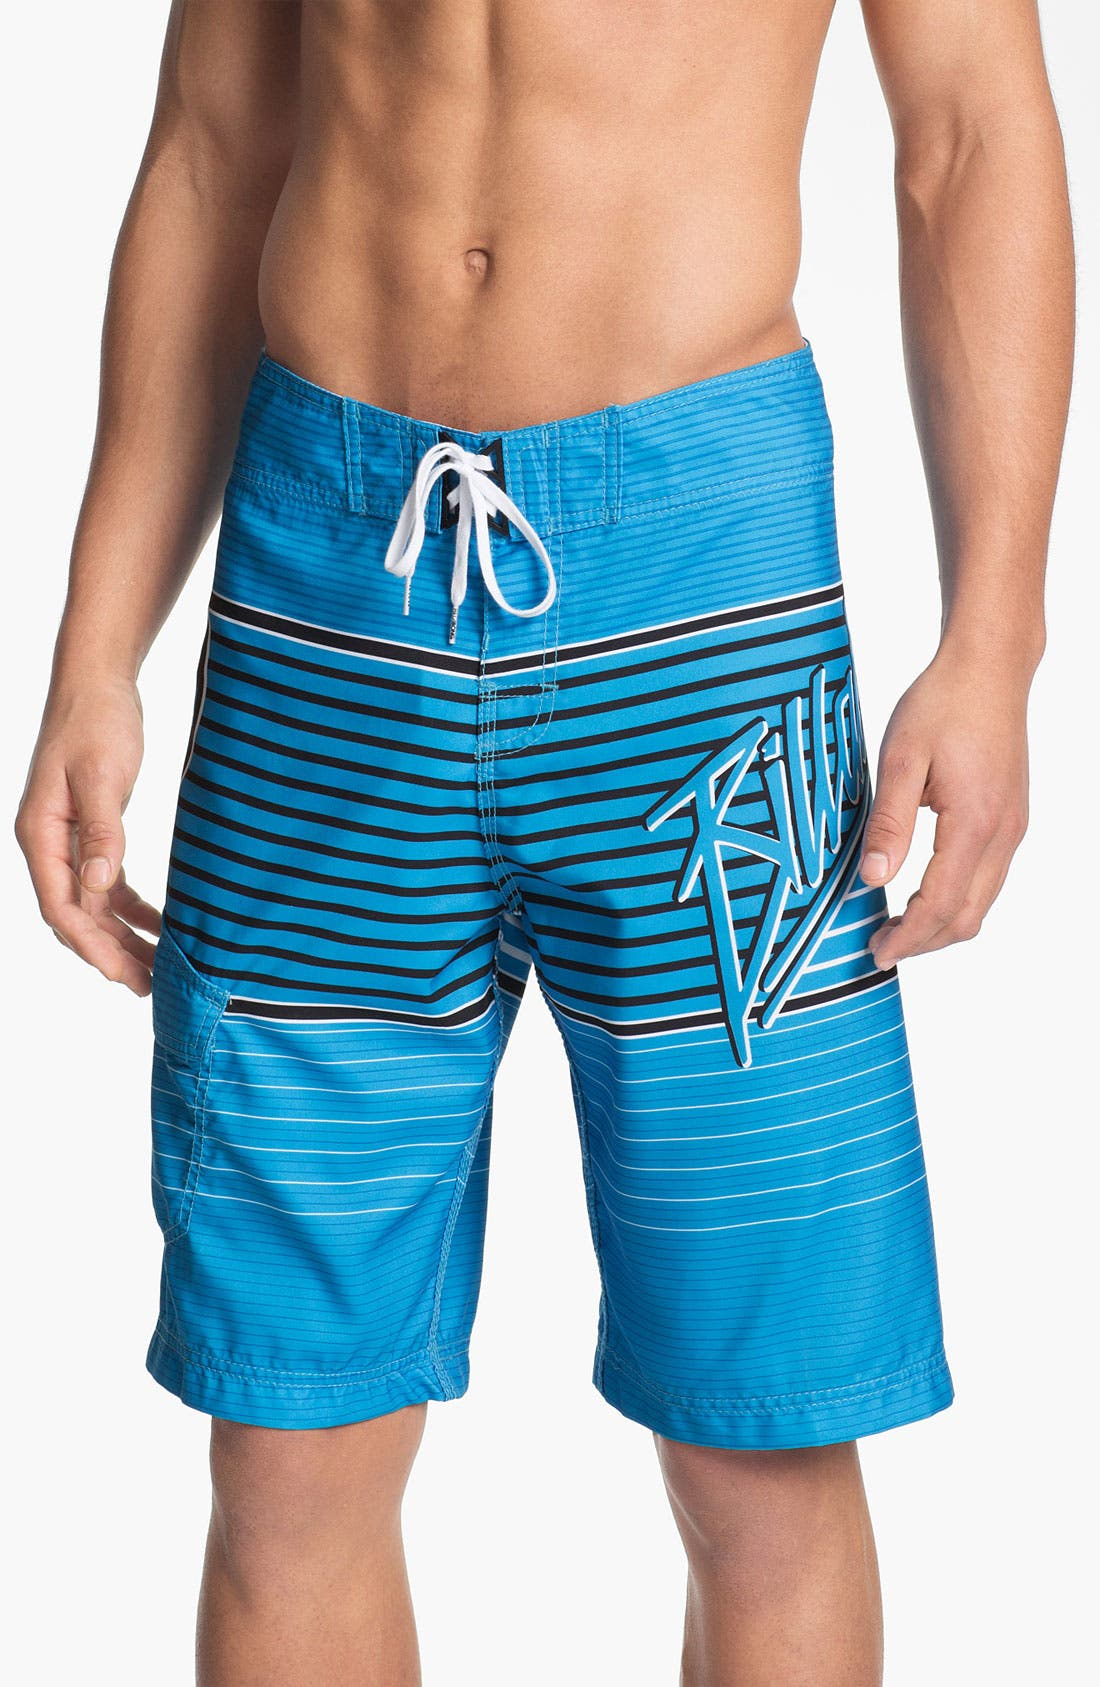 Alternate Image 1 Selected - Billabong 'All League' Board Shorts